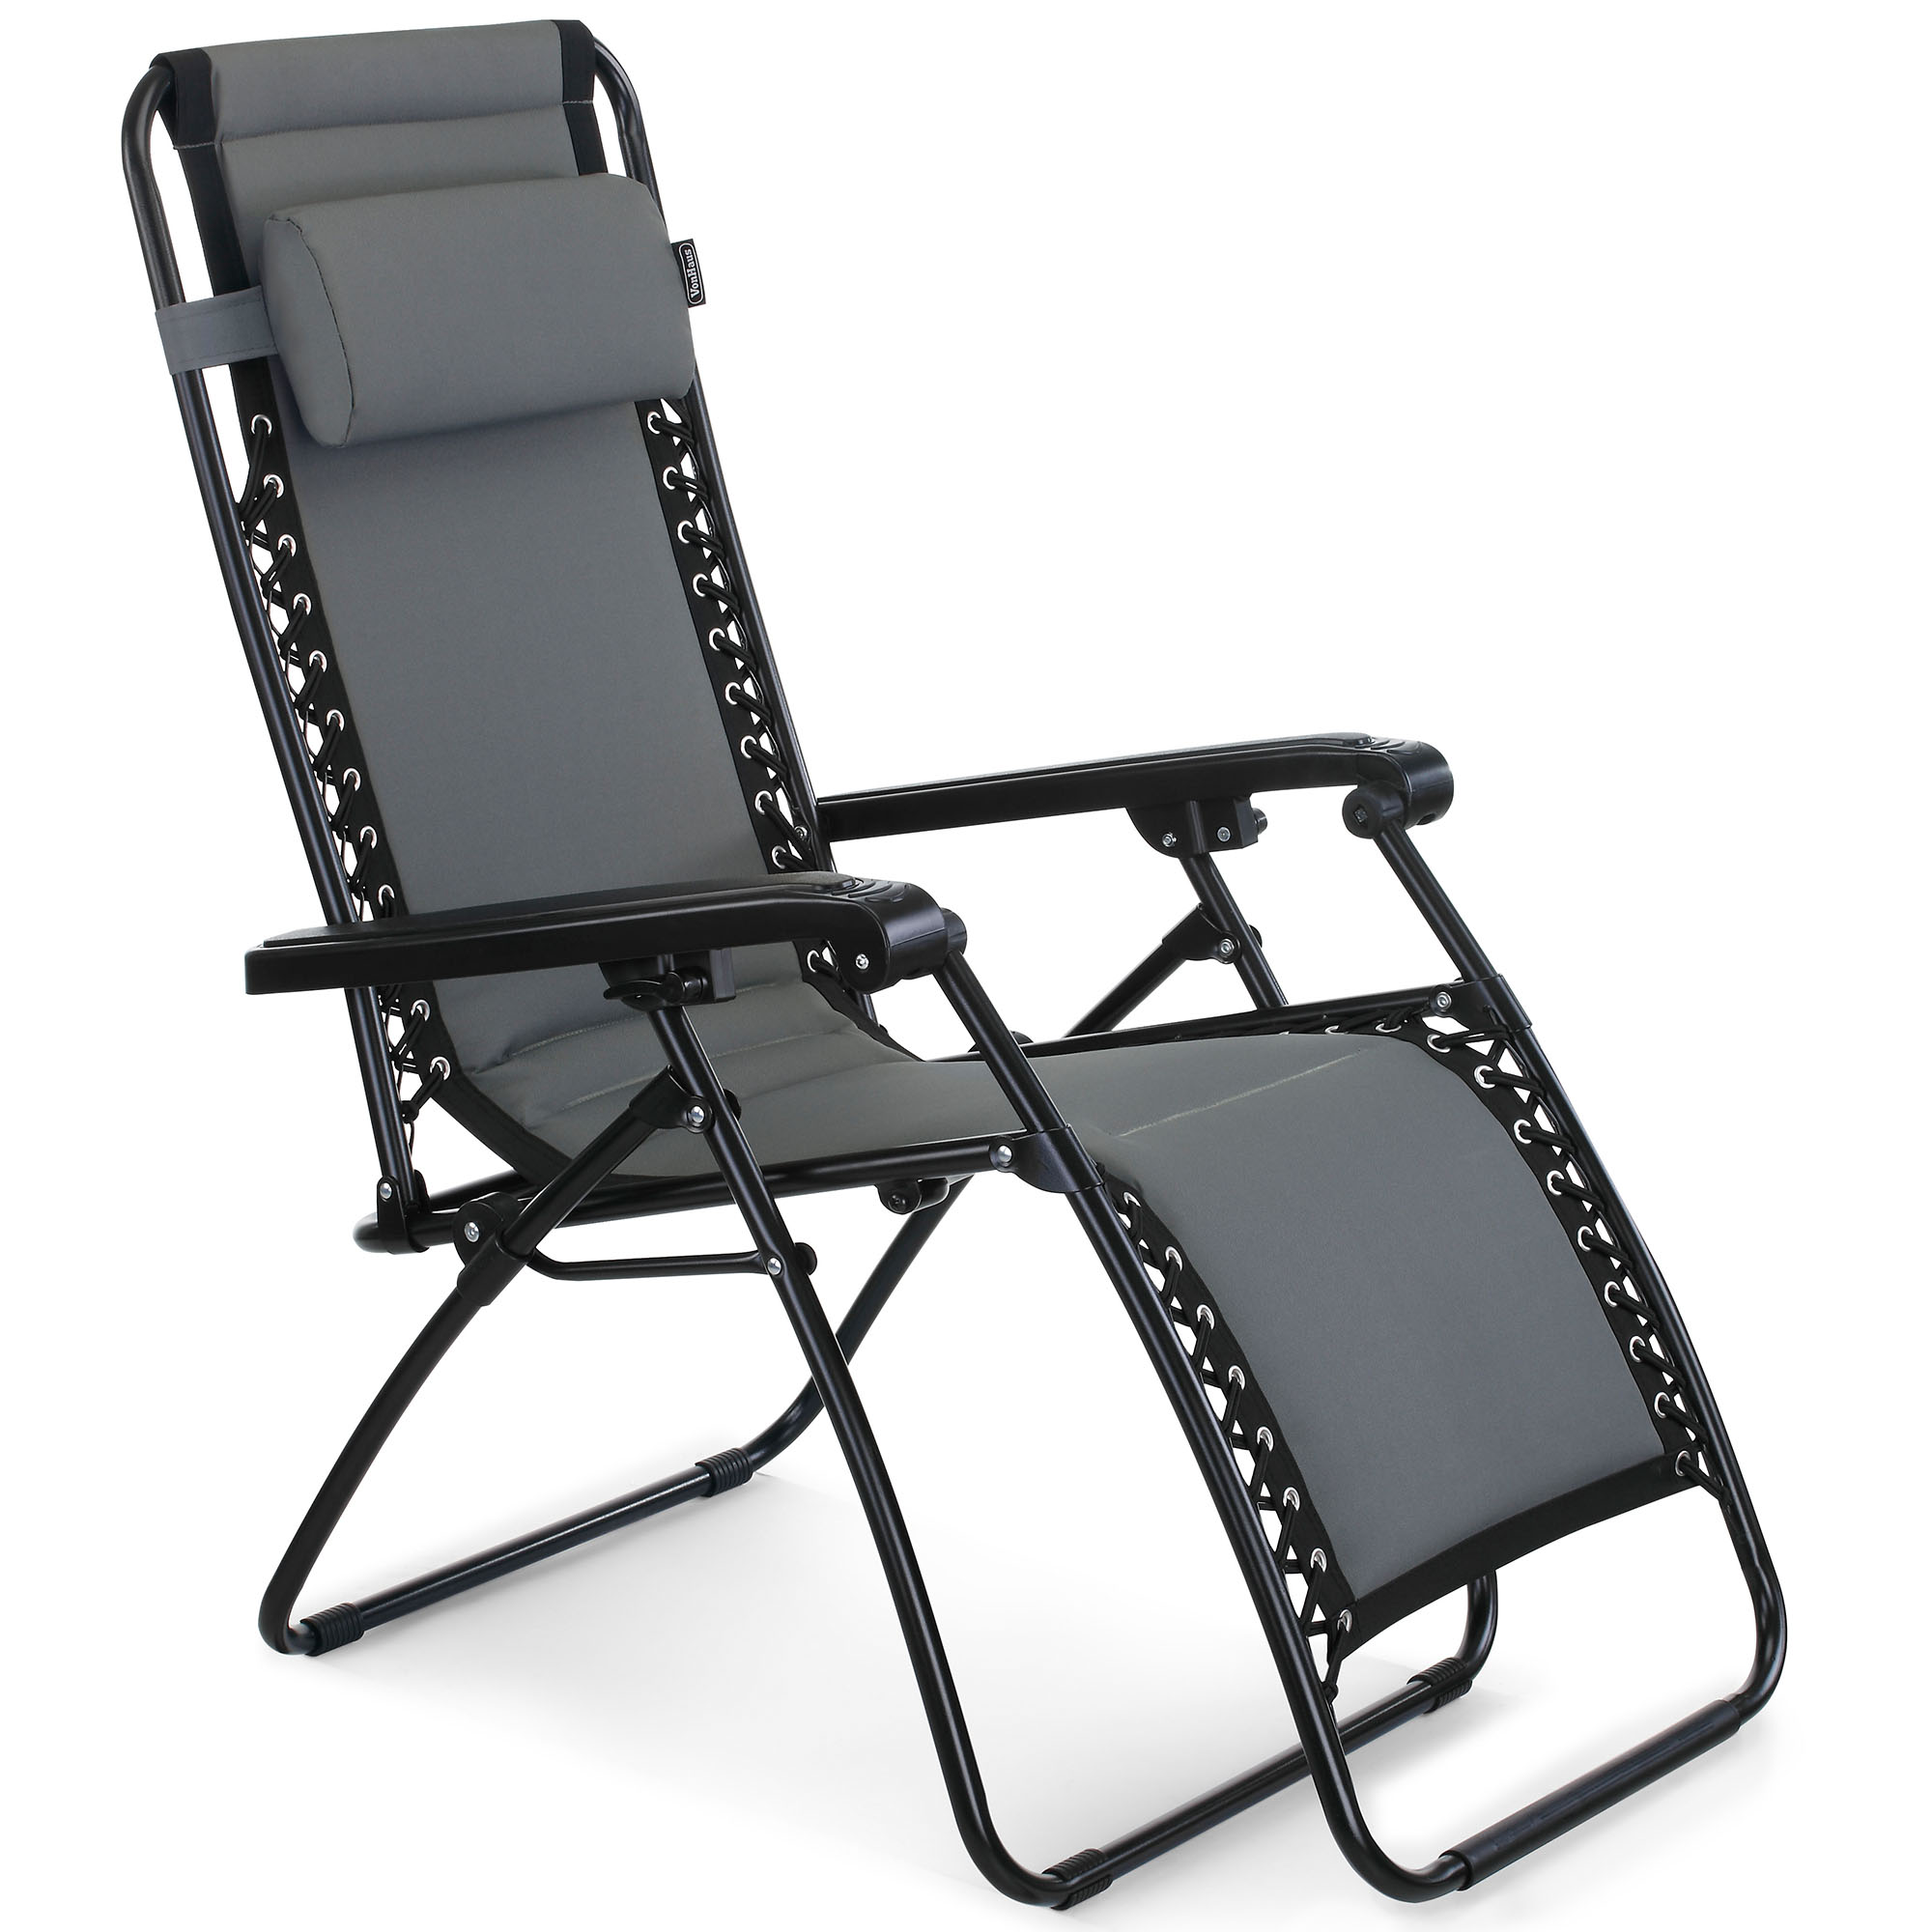 Sentinel VonHaus Oxford 600D Padded Zero Gravity Chair - Outdoor Sun Lounger Recliner for Patio Garden  sc 1 st  eBay : zero gravity garden recliner - islam-shia.org